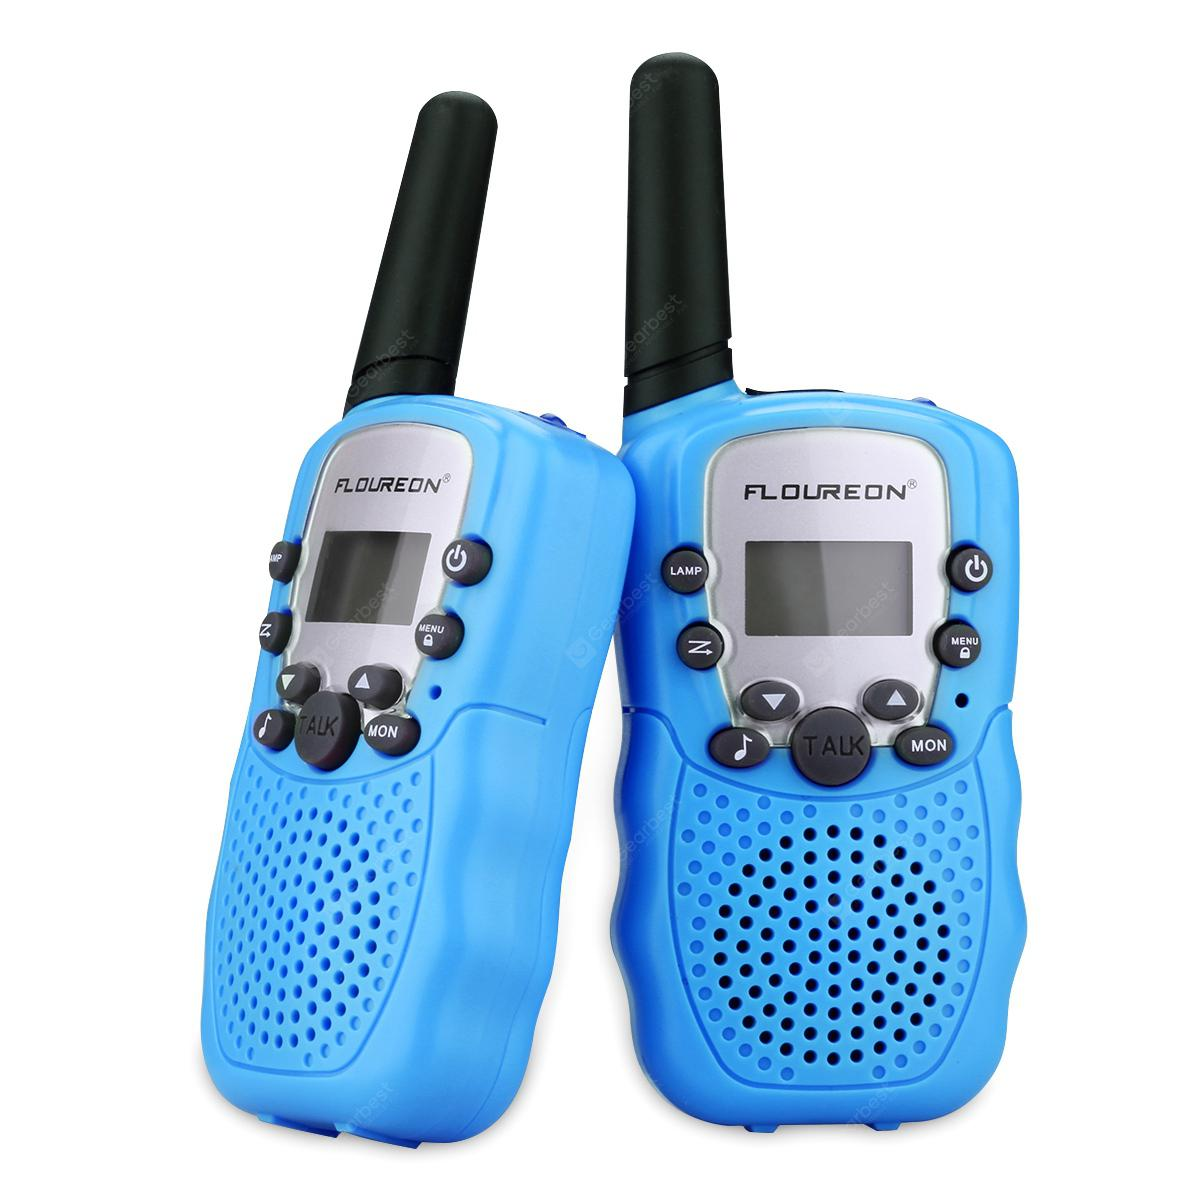 FLOUREON 22 Channel Twin Walkie Talkies UHF462-467MHZ 2-Way Radio 3 Km Range Blue - Blue